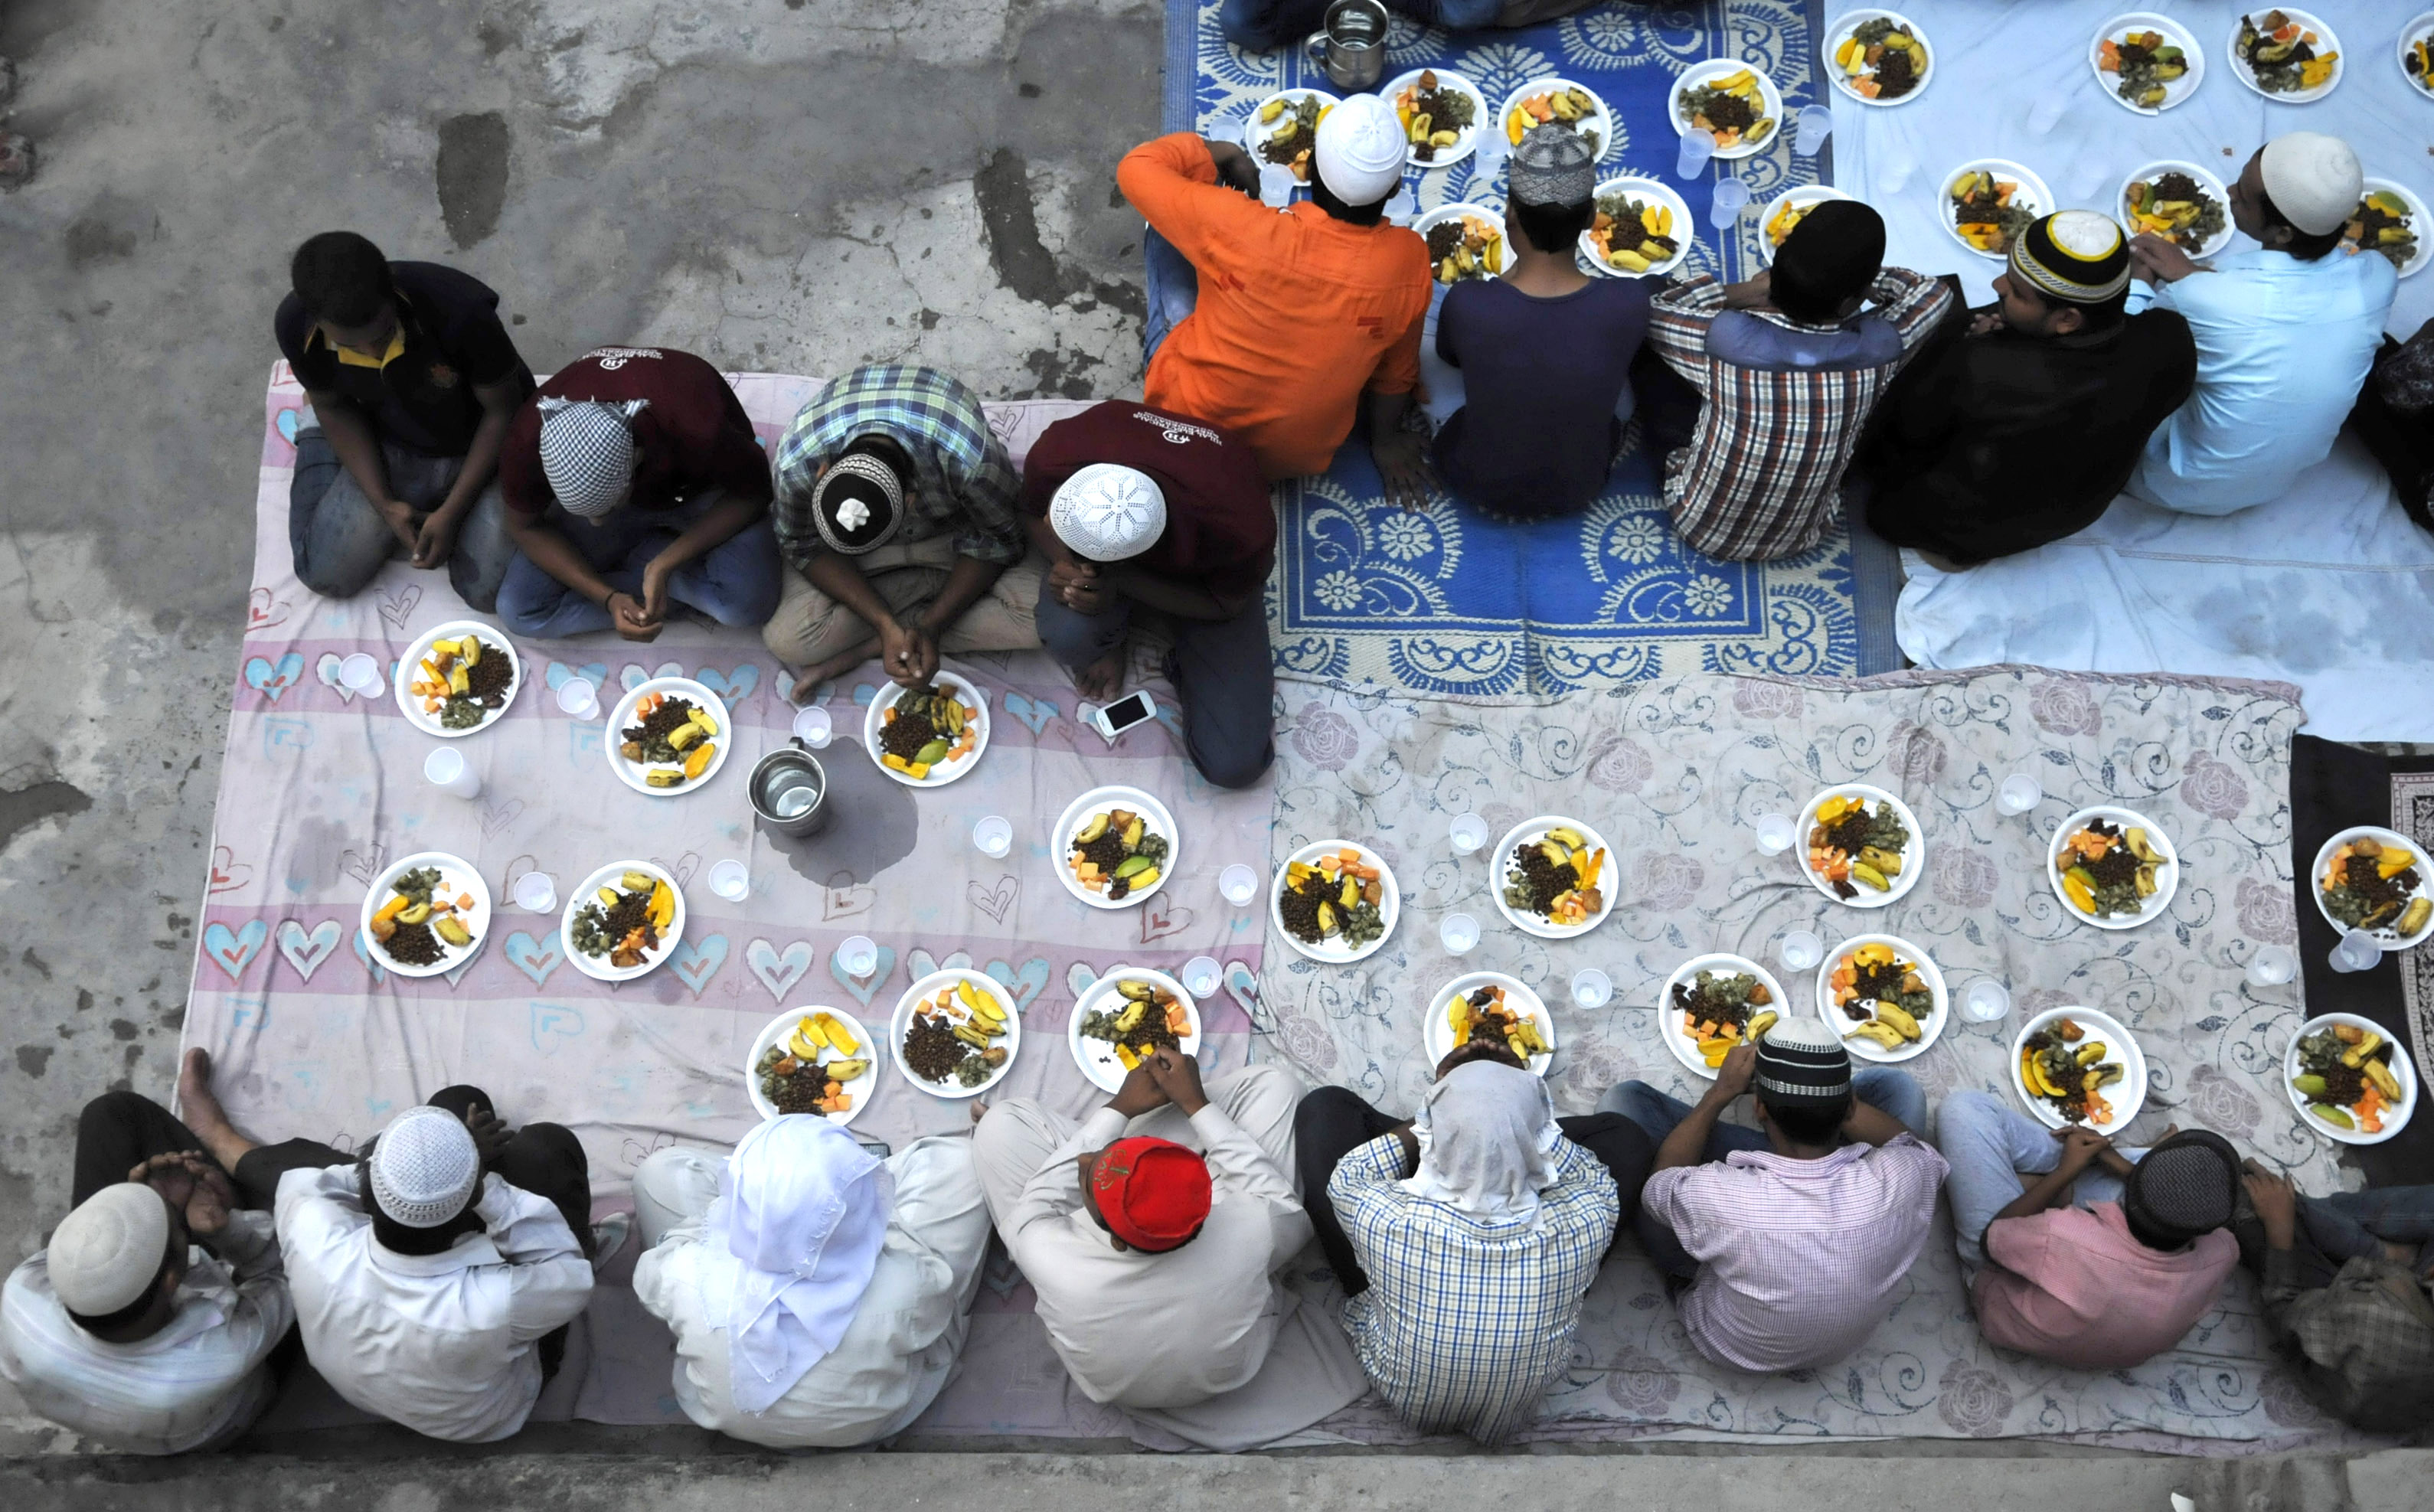 Muslims offer prayers before breaking their Roza fast with Iftar meal during the ongoing month of Ramzan on June 28, 2016 in Noida, India.